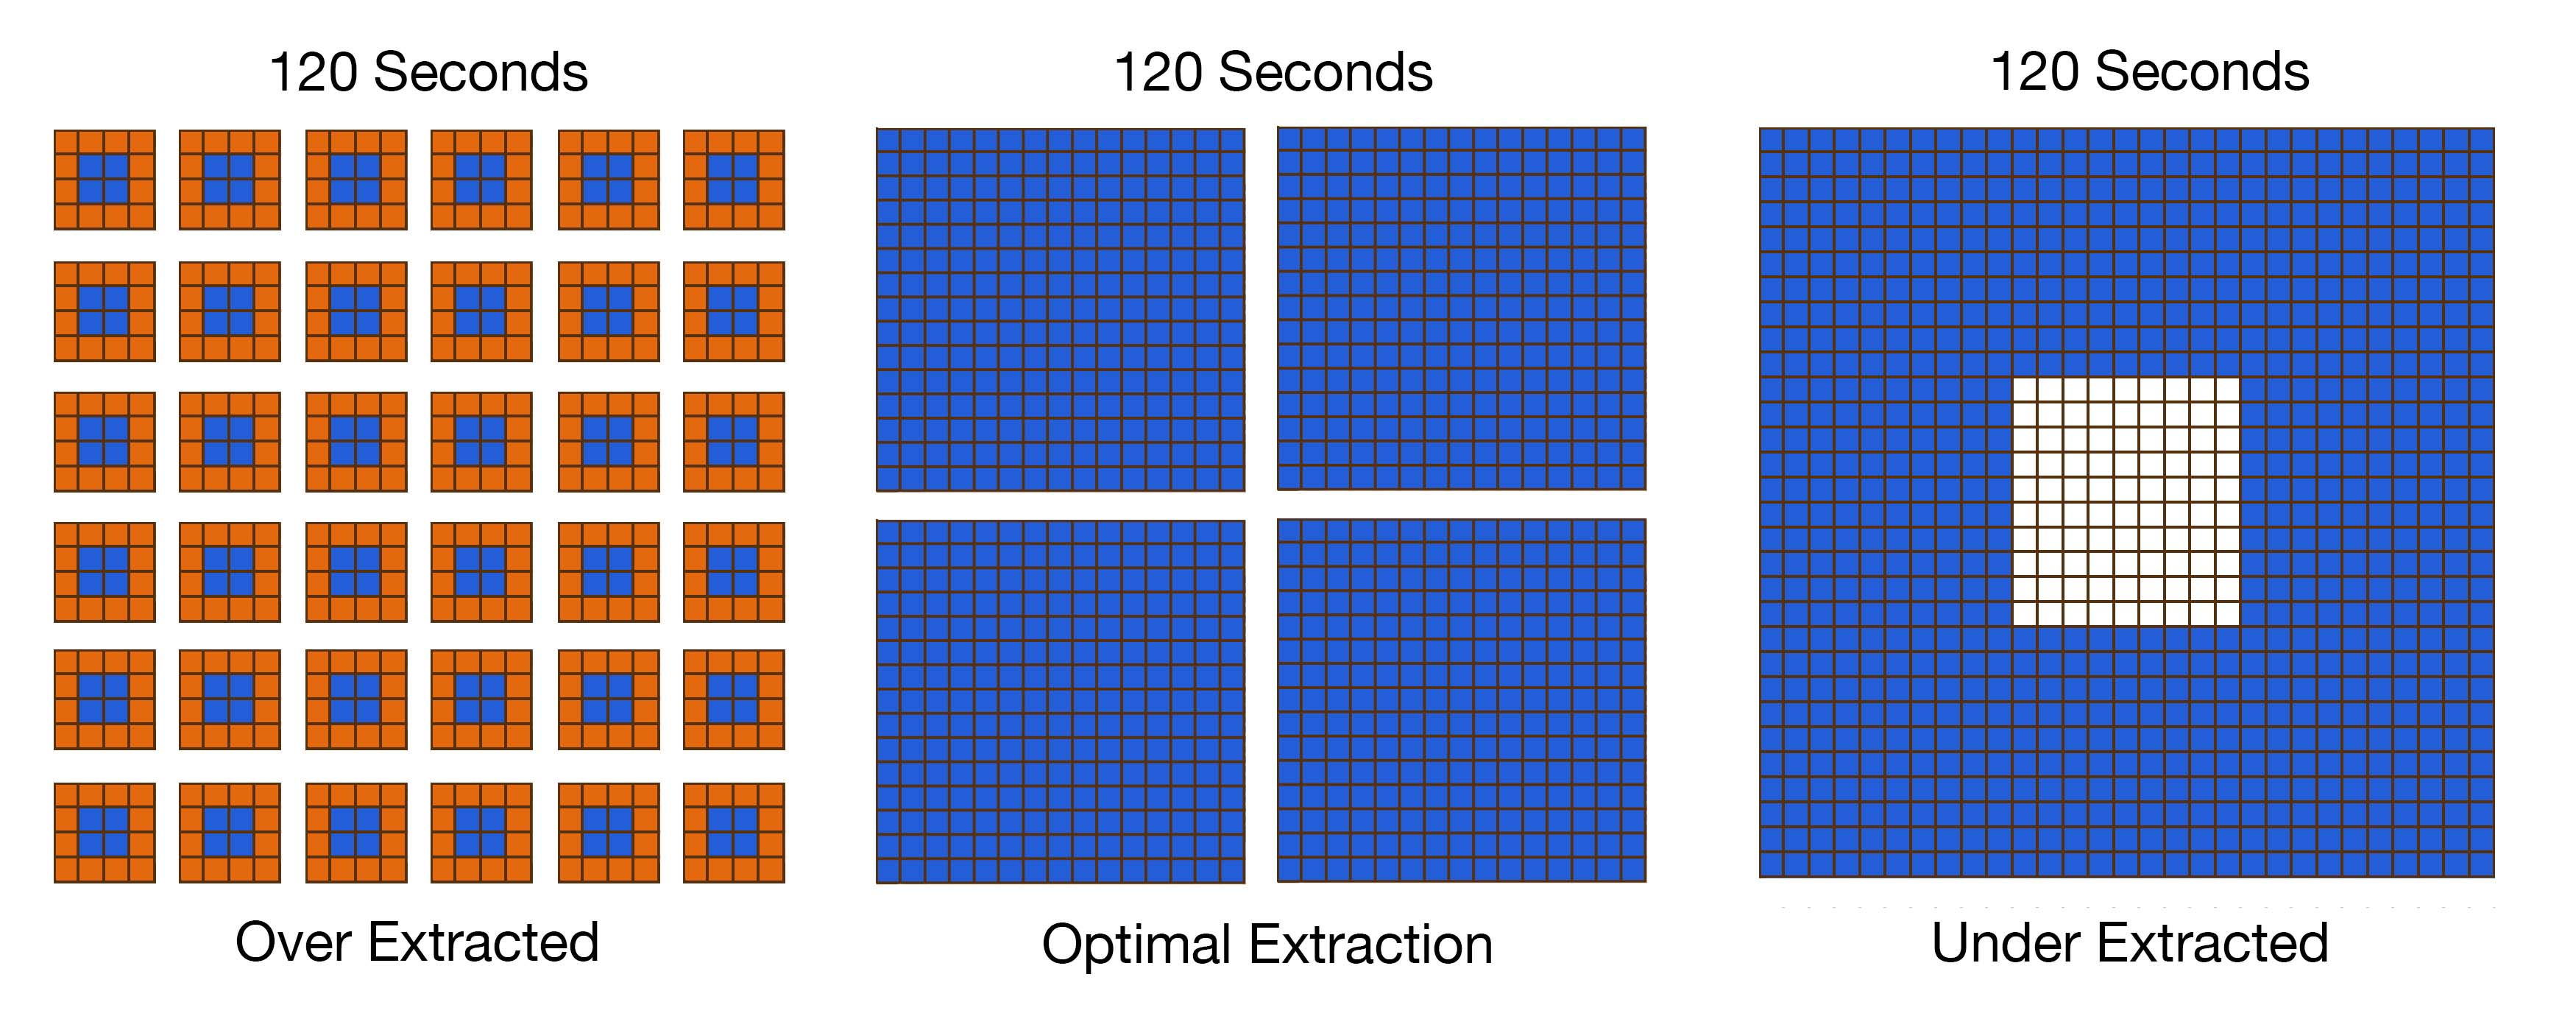 visualization of over extracted, optimal extraction, and under extracted coffee